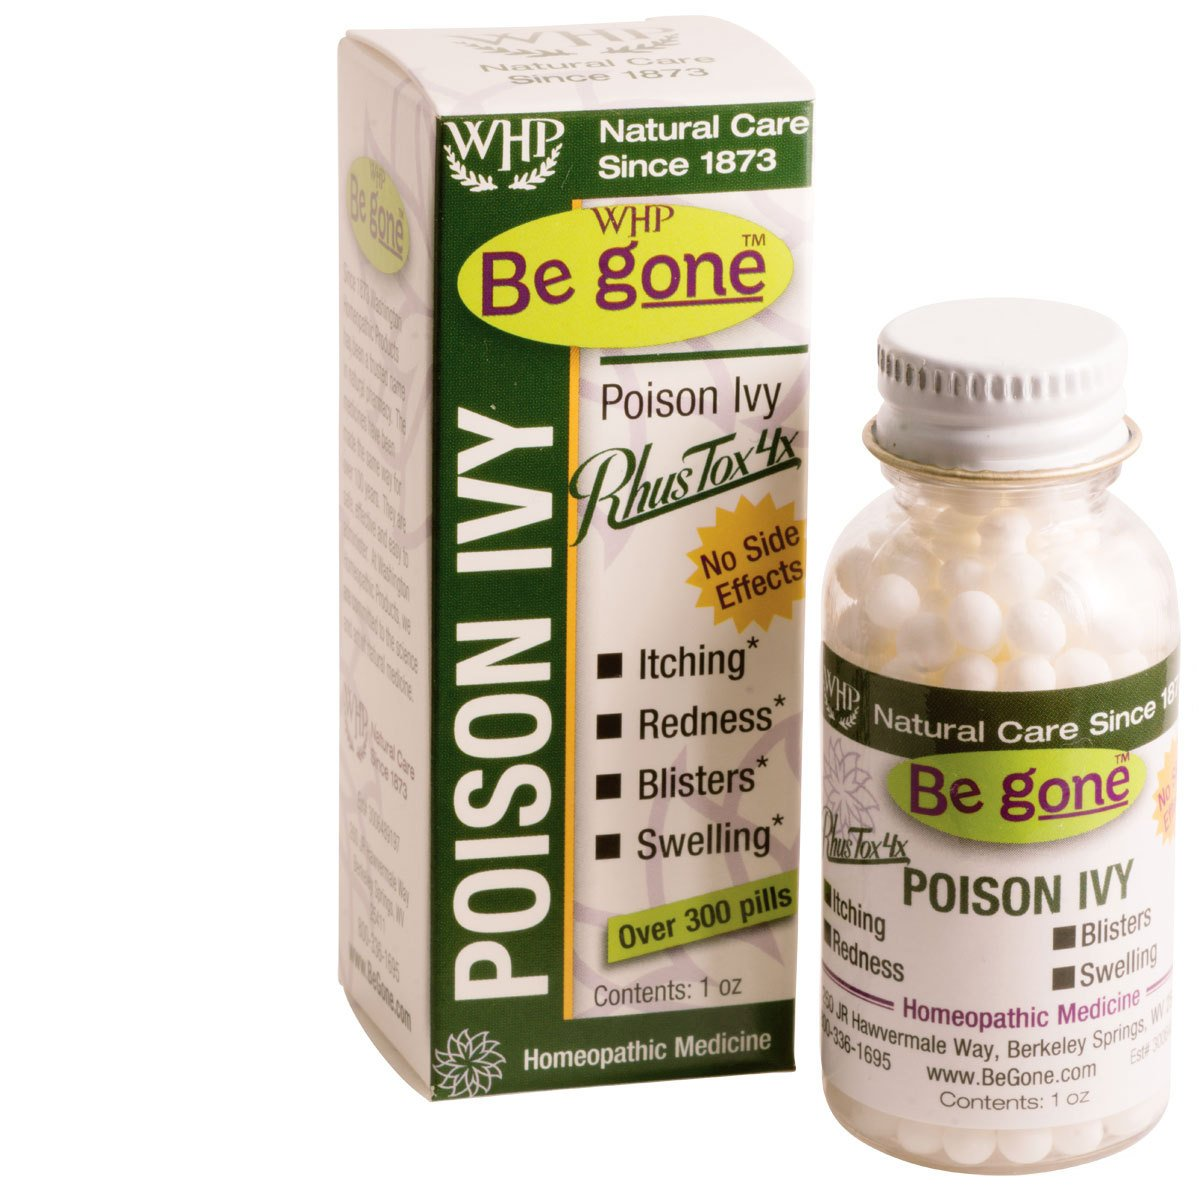 Be goneTM Poison Ivy, 300 Pills. An Effective, All-Natural Solution for the Itching, Blistering Rash of Poison Ivy. by WHP Be gone